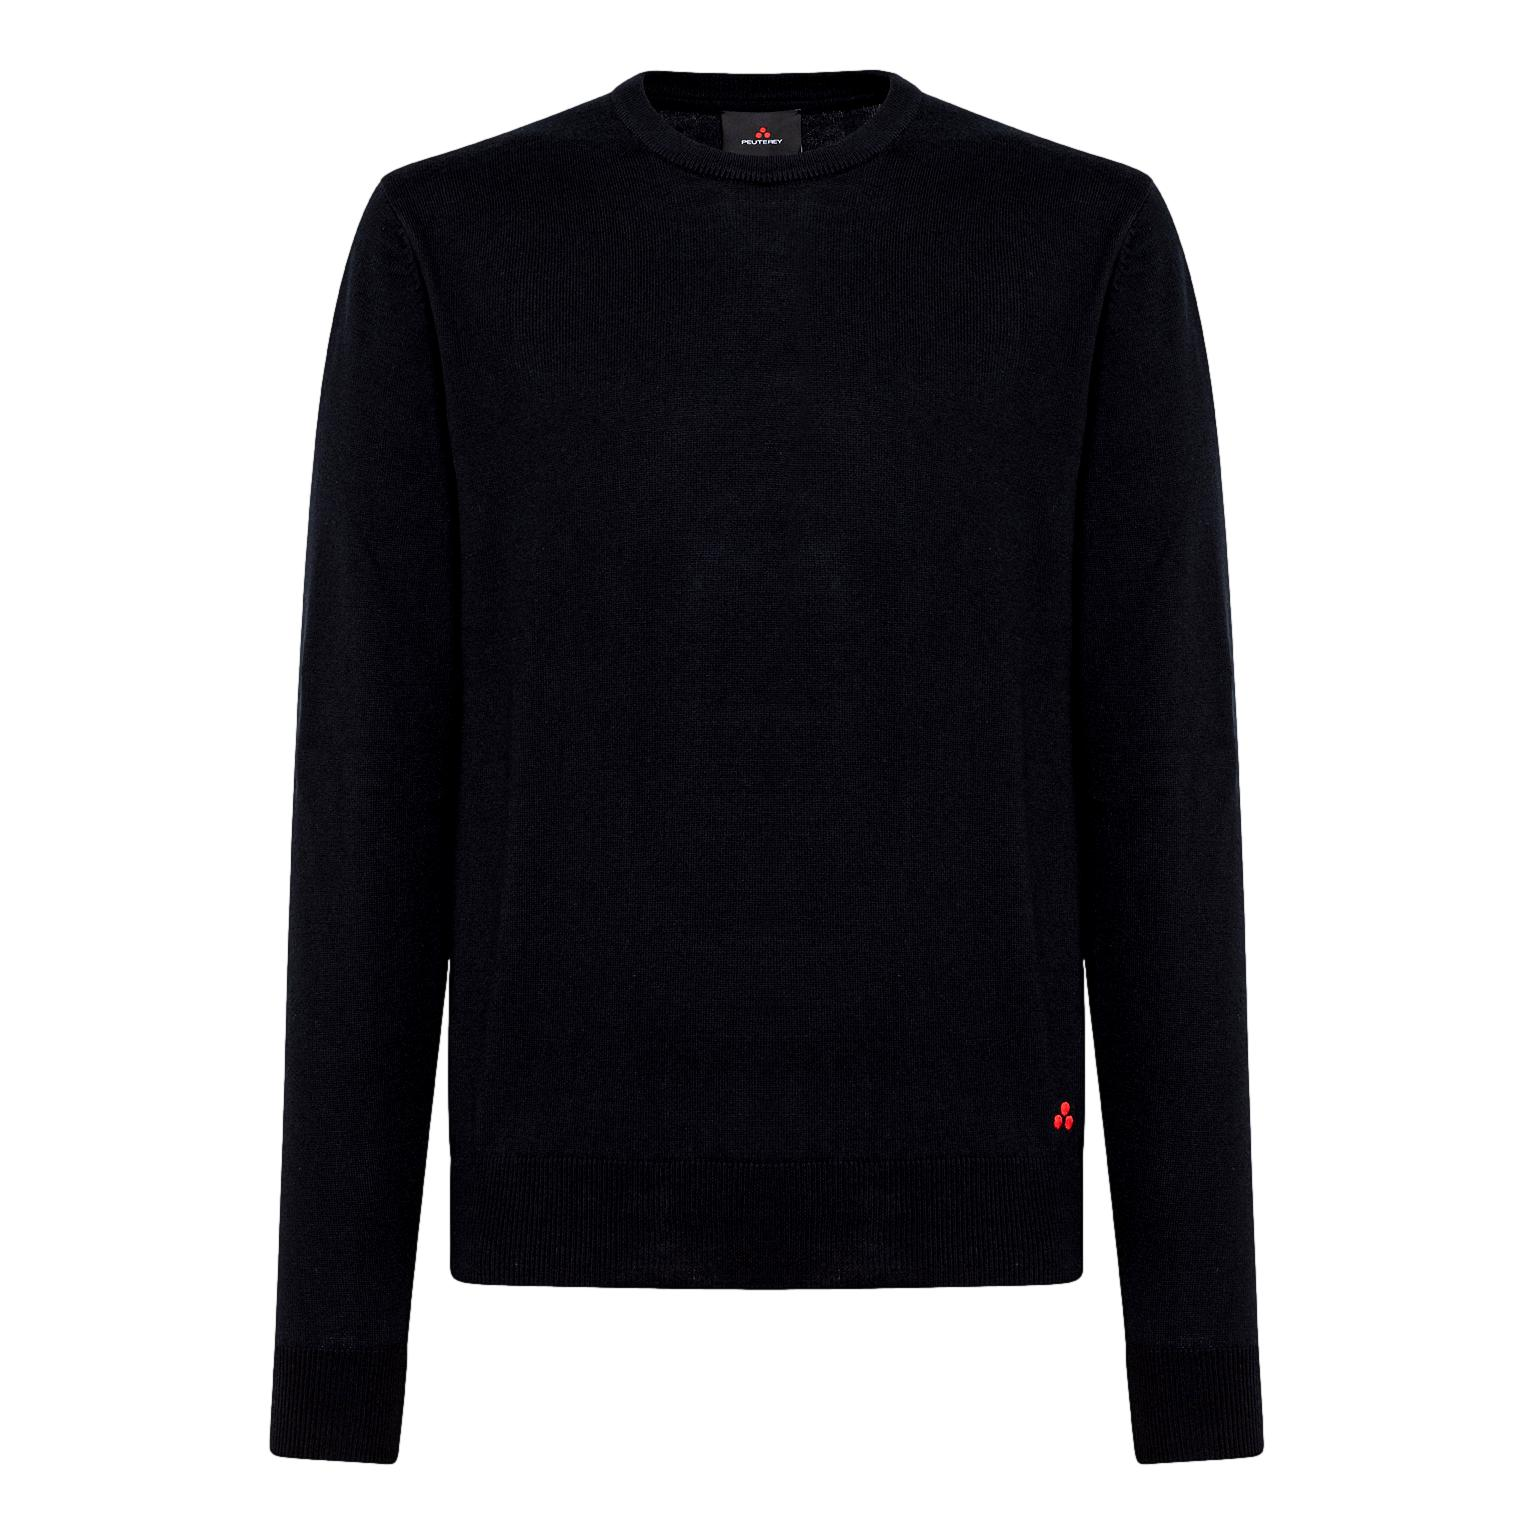 COTTON AND WOOL TRICOT SWEATEREXMOOR 04 PEUTEREY      PEU3638 99011919215